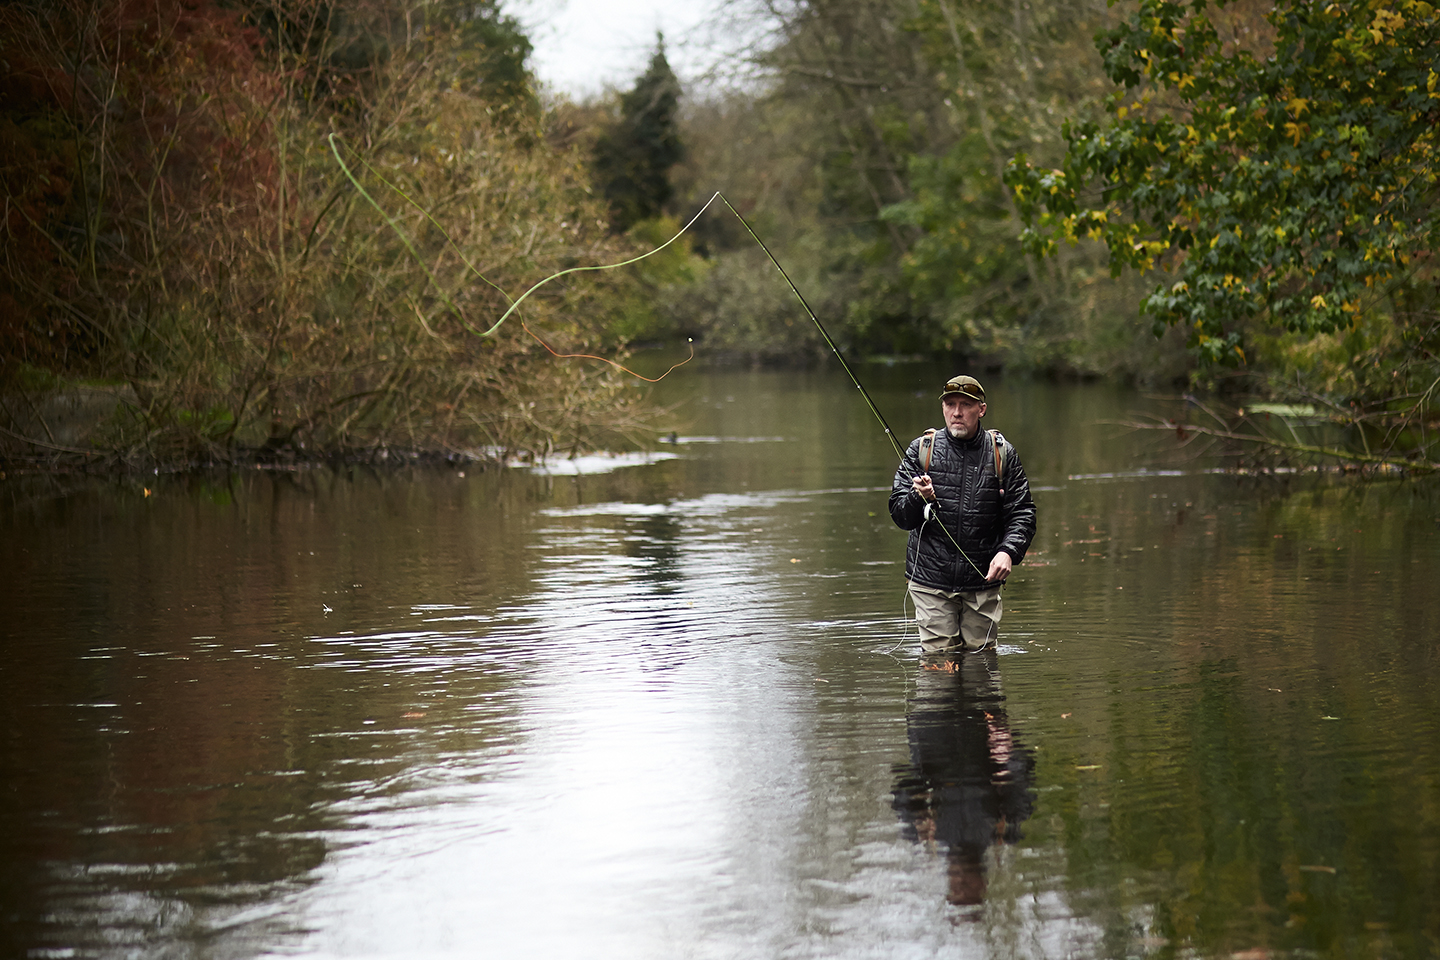 A fly fisherman wading in the River Wandle in Southwest London